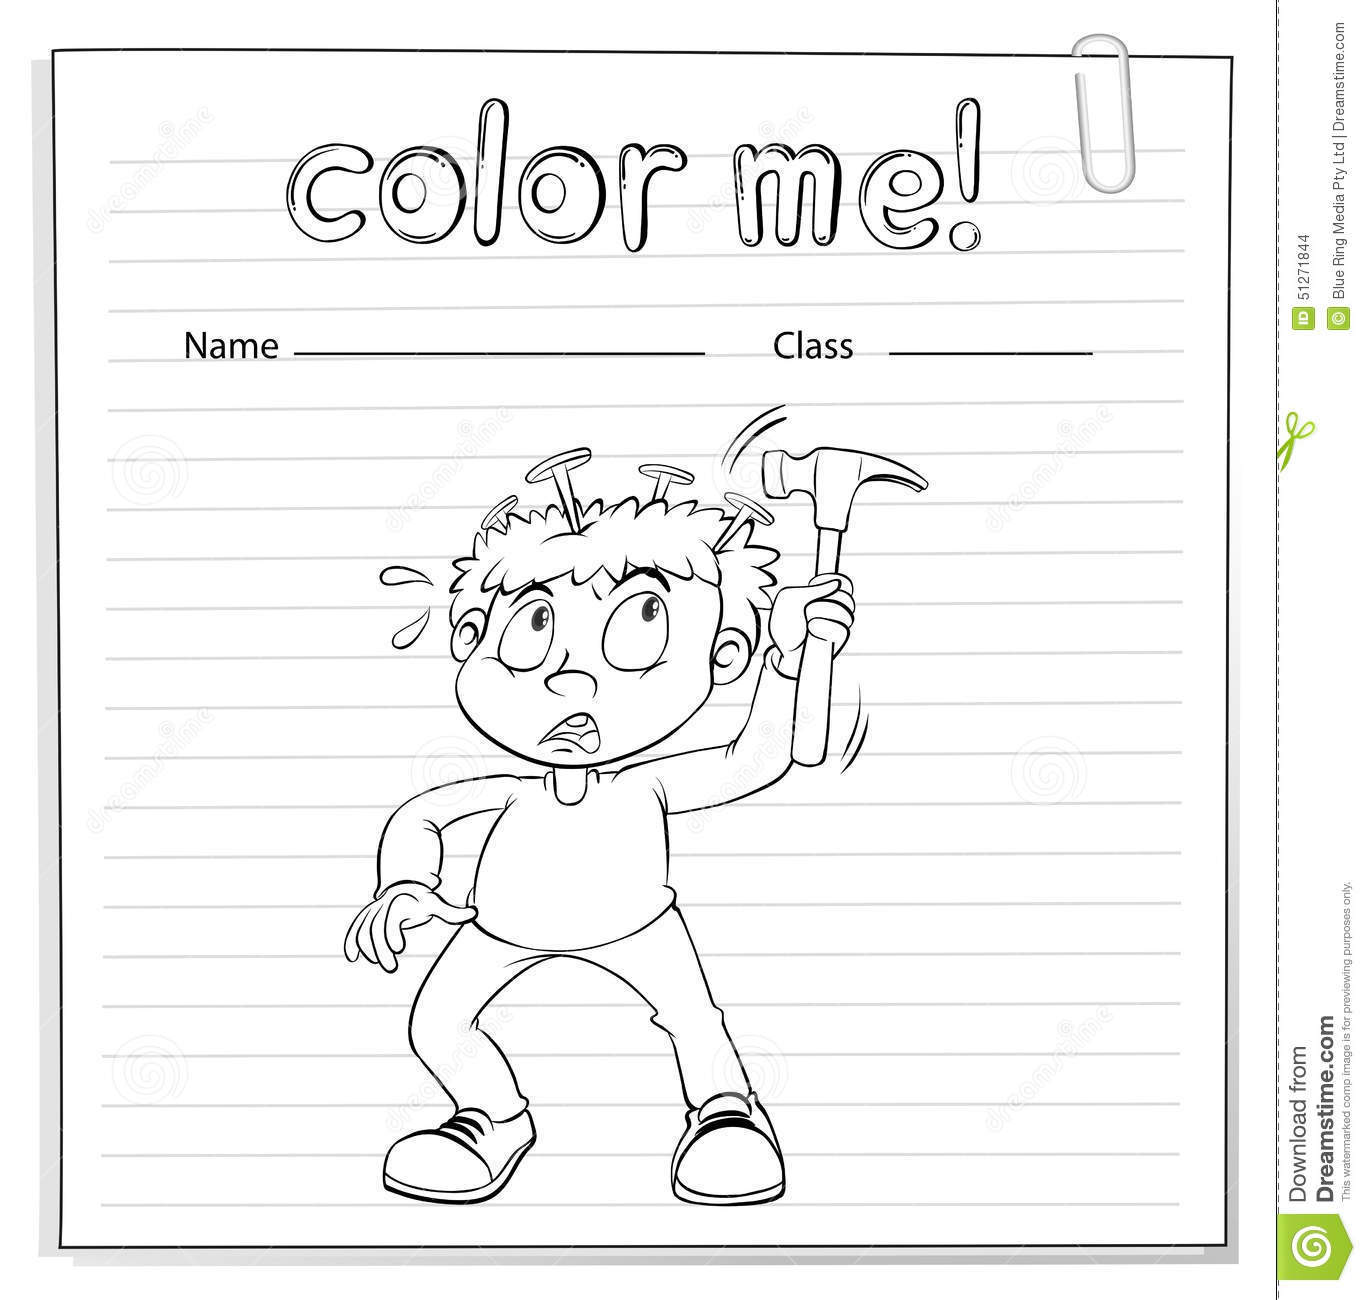 Coloring Worksheet With A Boy Holding A Hammer Stock